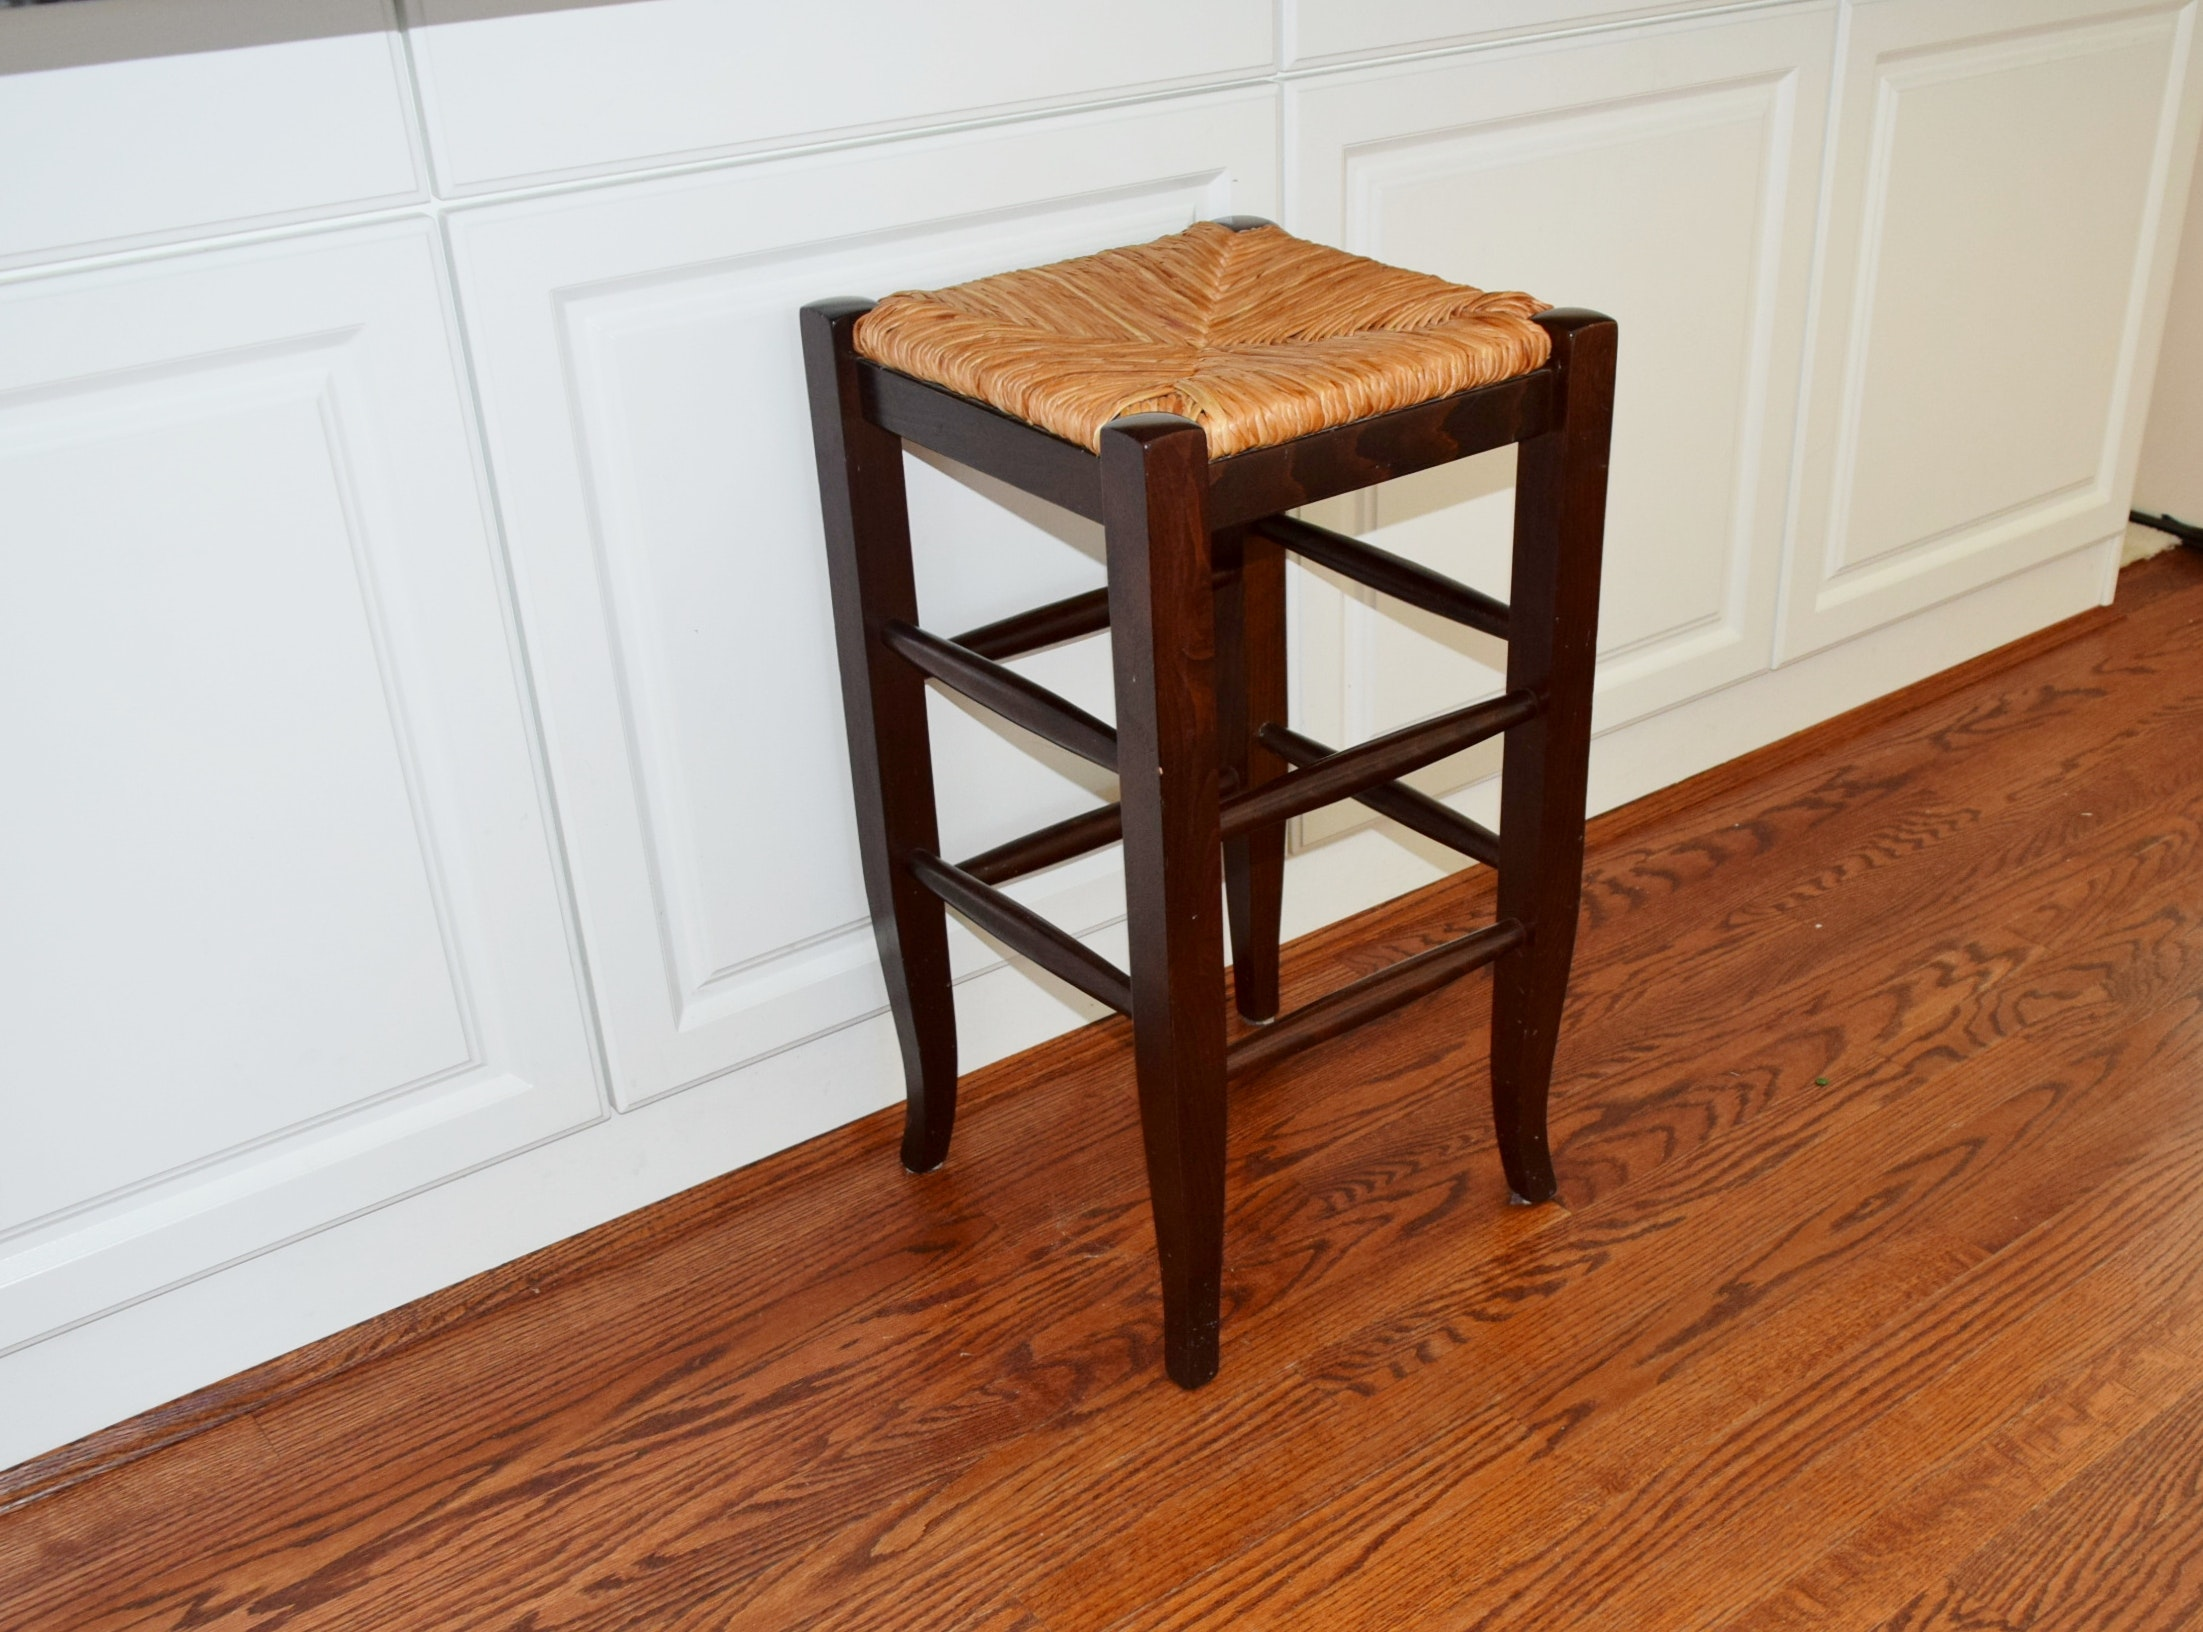 Pottery Barn quotNapoleonquot Rush Seat Counter Bar Stool EBTH : DSC0940JPGixlibrb 11 from www.ebth.com size 880 x 906 jpeg 147kB